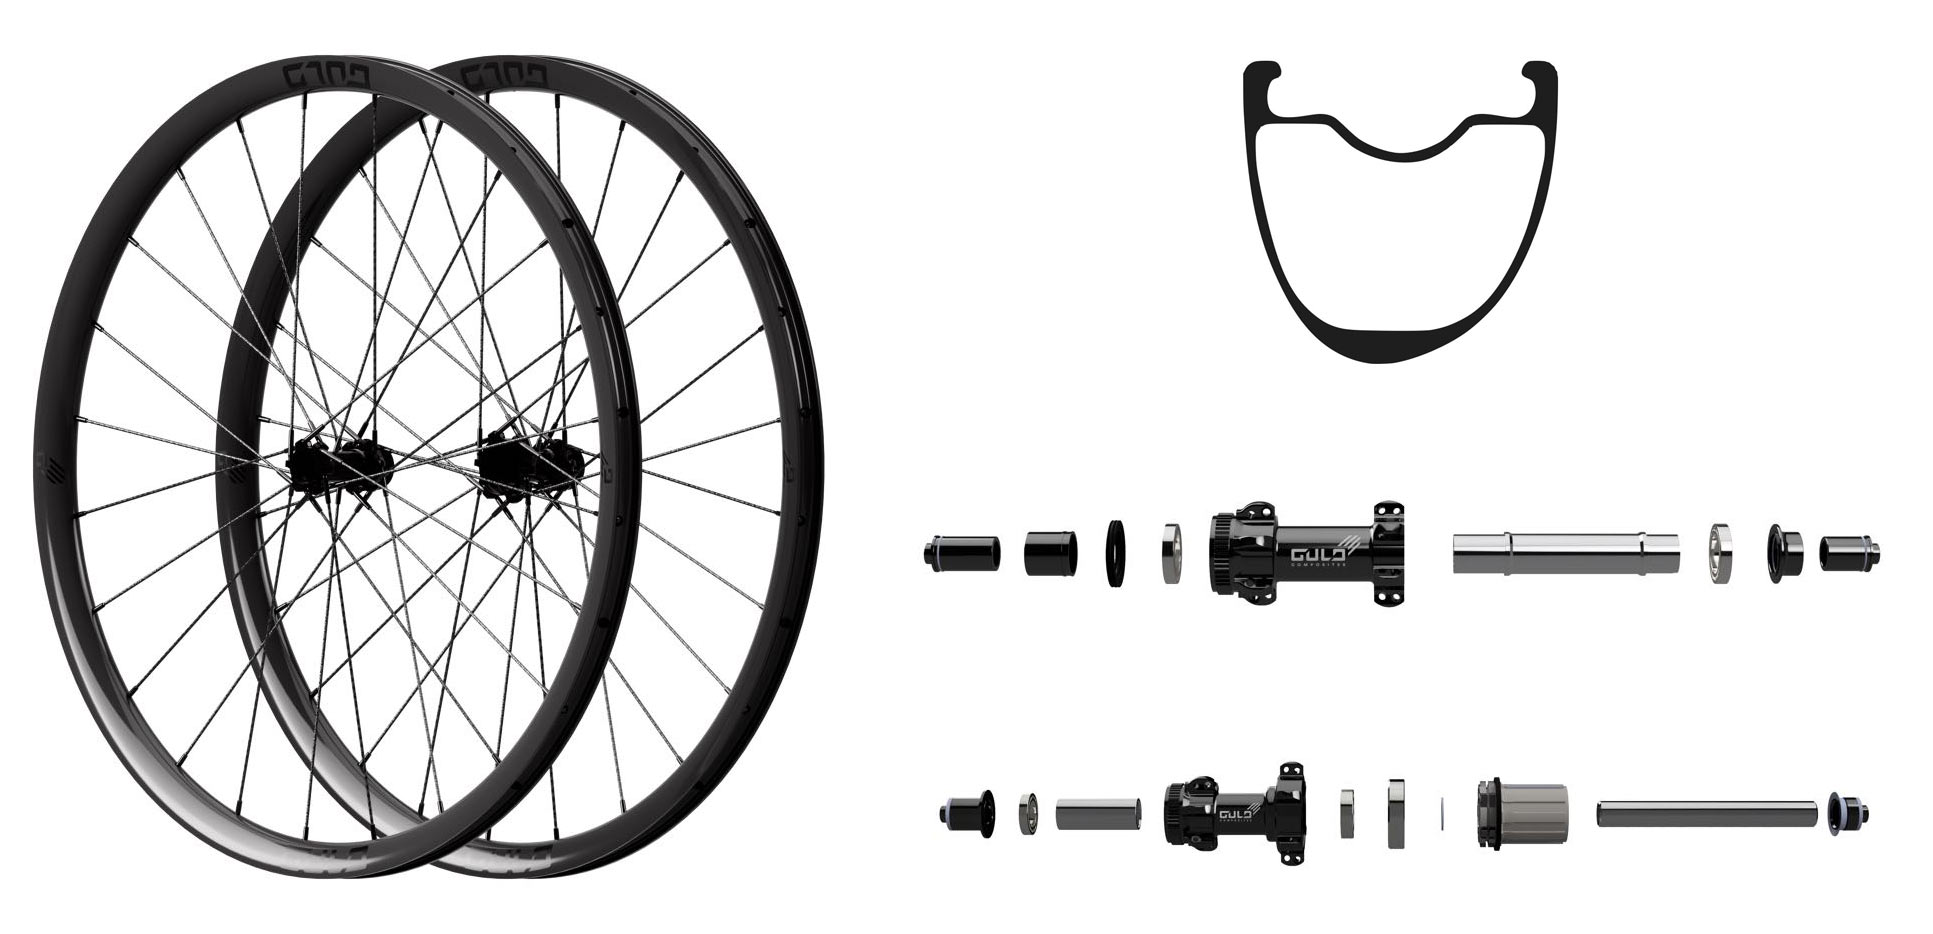 gulo grx sl gravel and cyclocross wheels with braided carbon fiber spokes